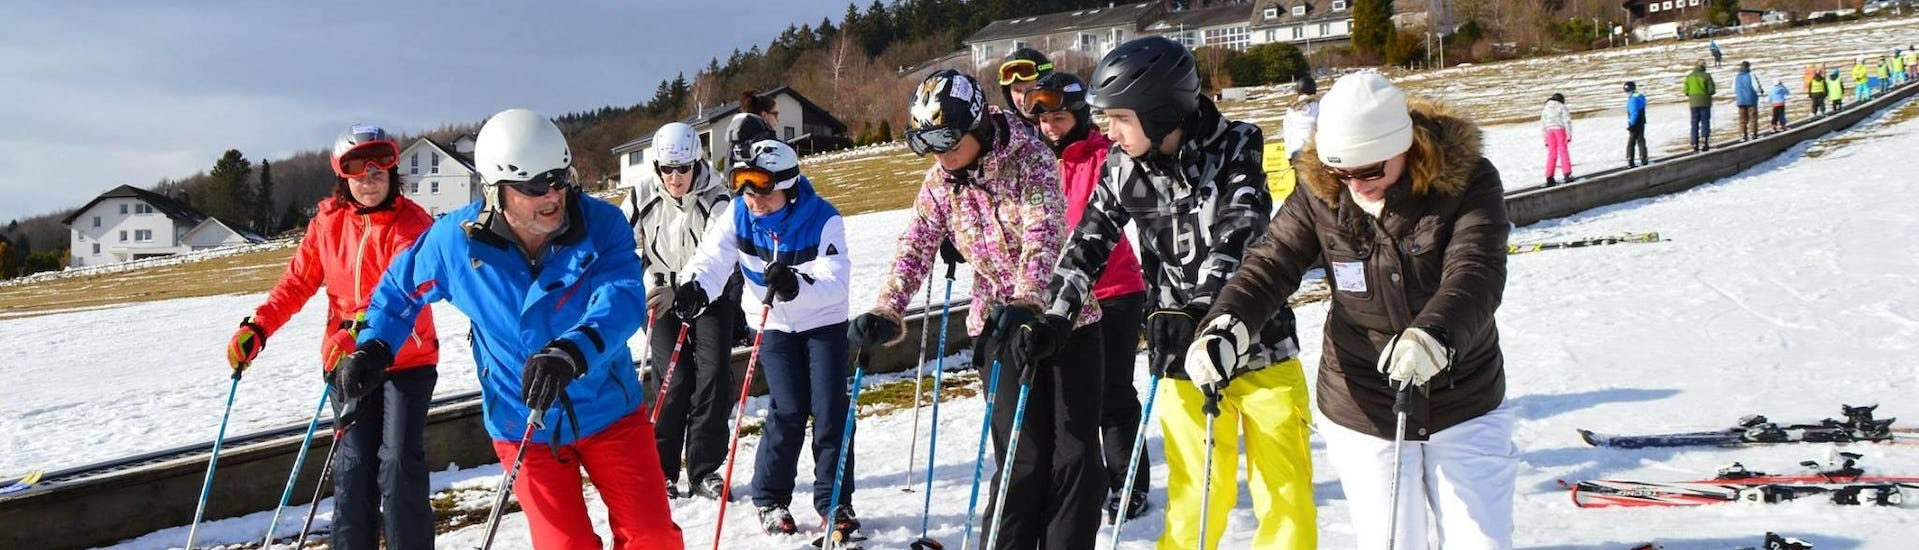 A ski instructor from WIWA   DSV Skischule & Skiverleih is teaching adults the basics of skiing during the Ski Lessons for Teens & Adults - All Levels.